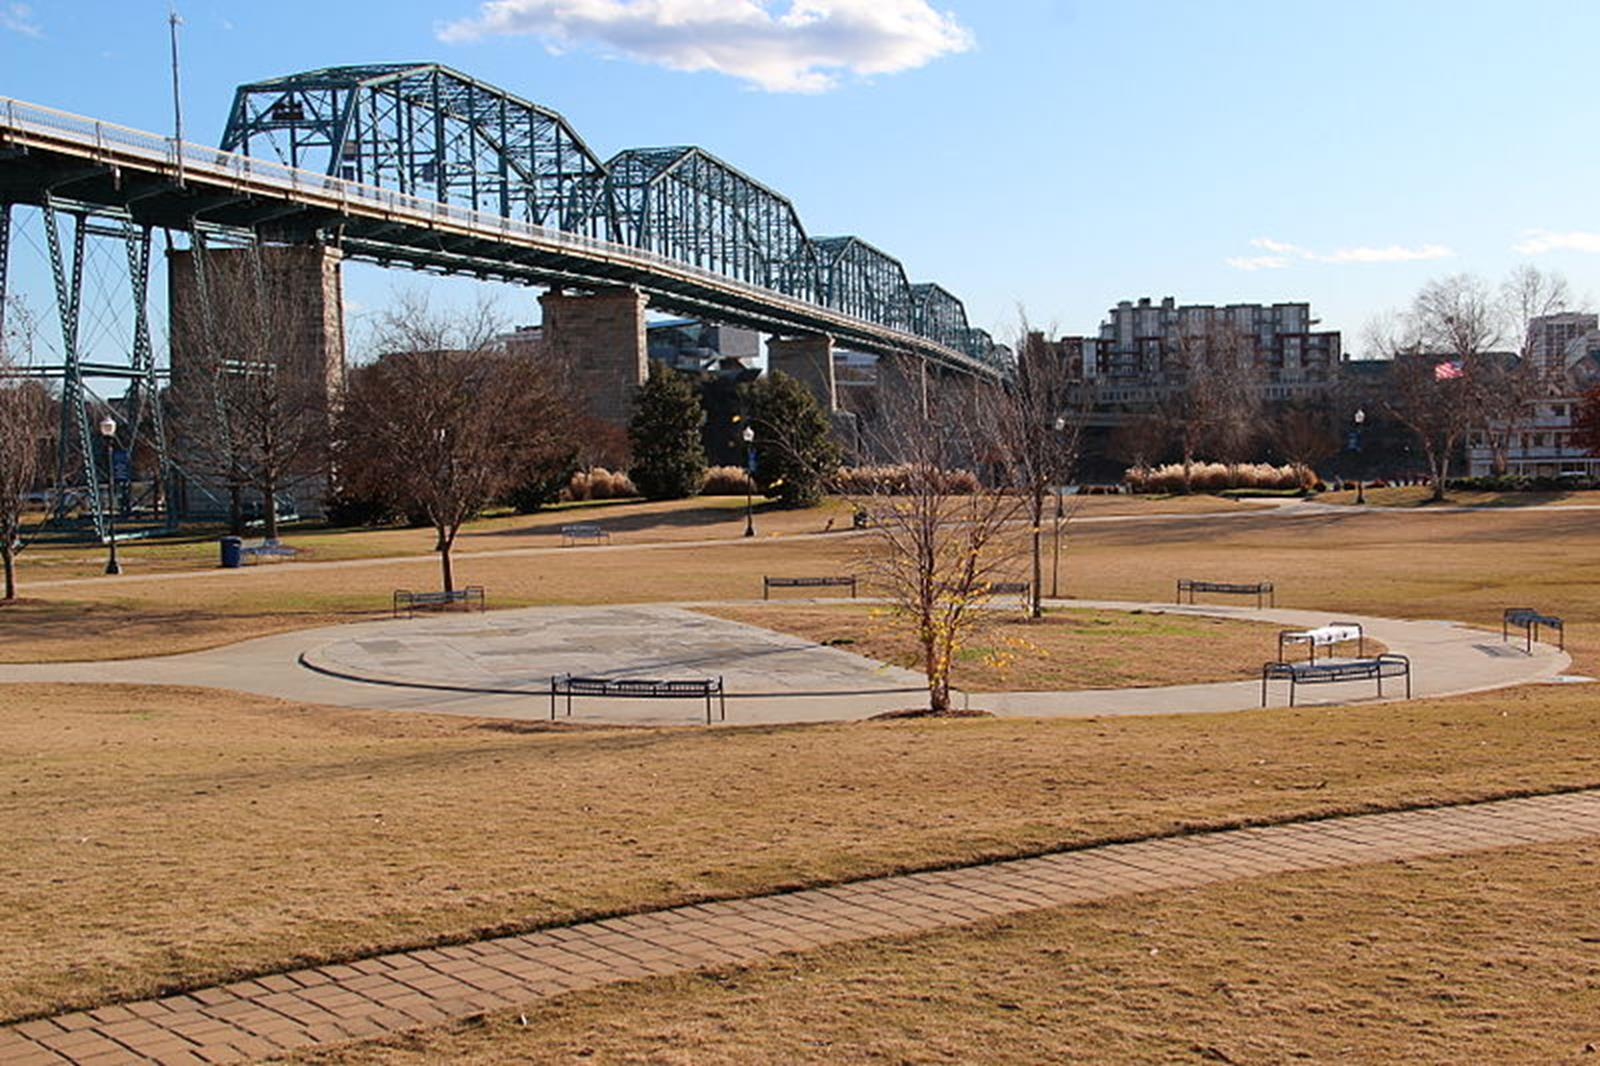 Garden Walk Chattanooga: Religious Group Trips To Chattanooga, Tennessee